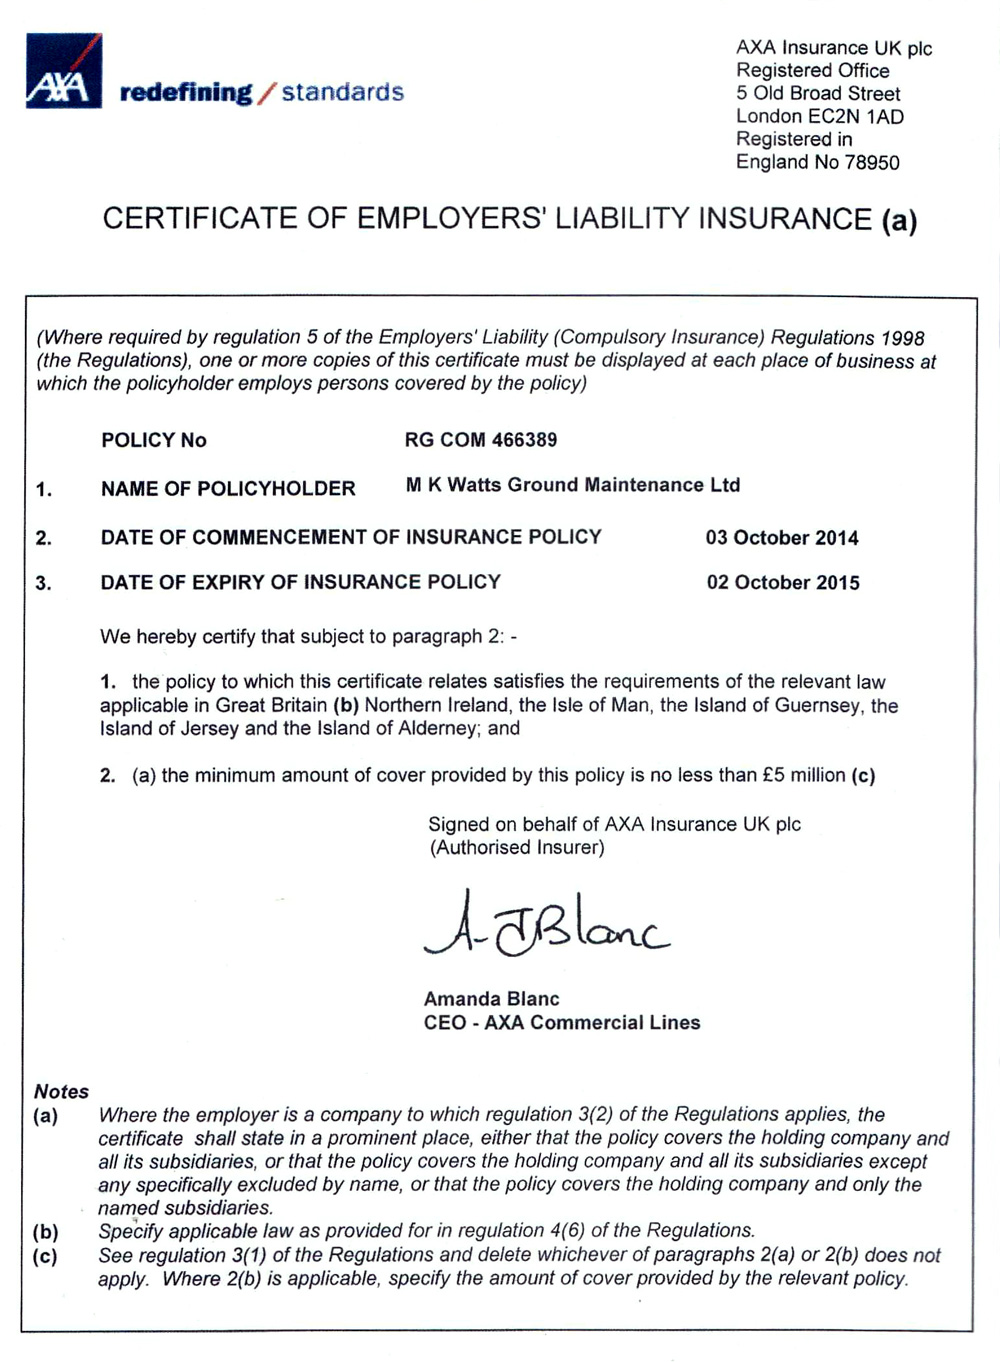 Insurance-Document-2015to2015--no1.jpg